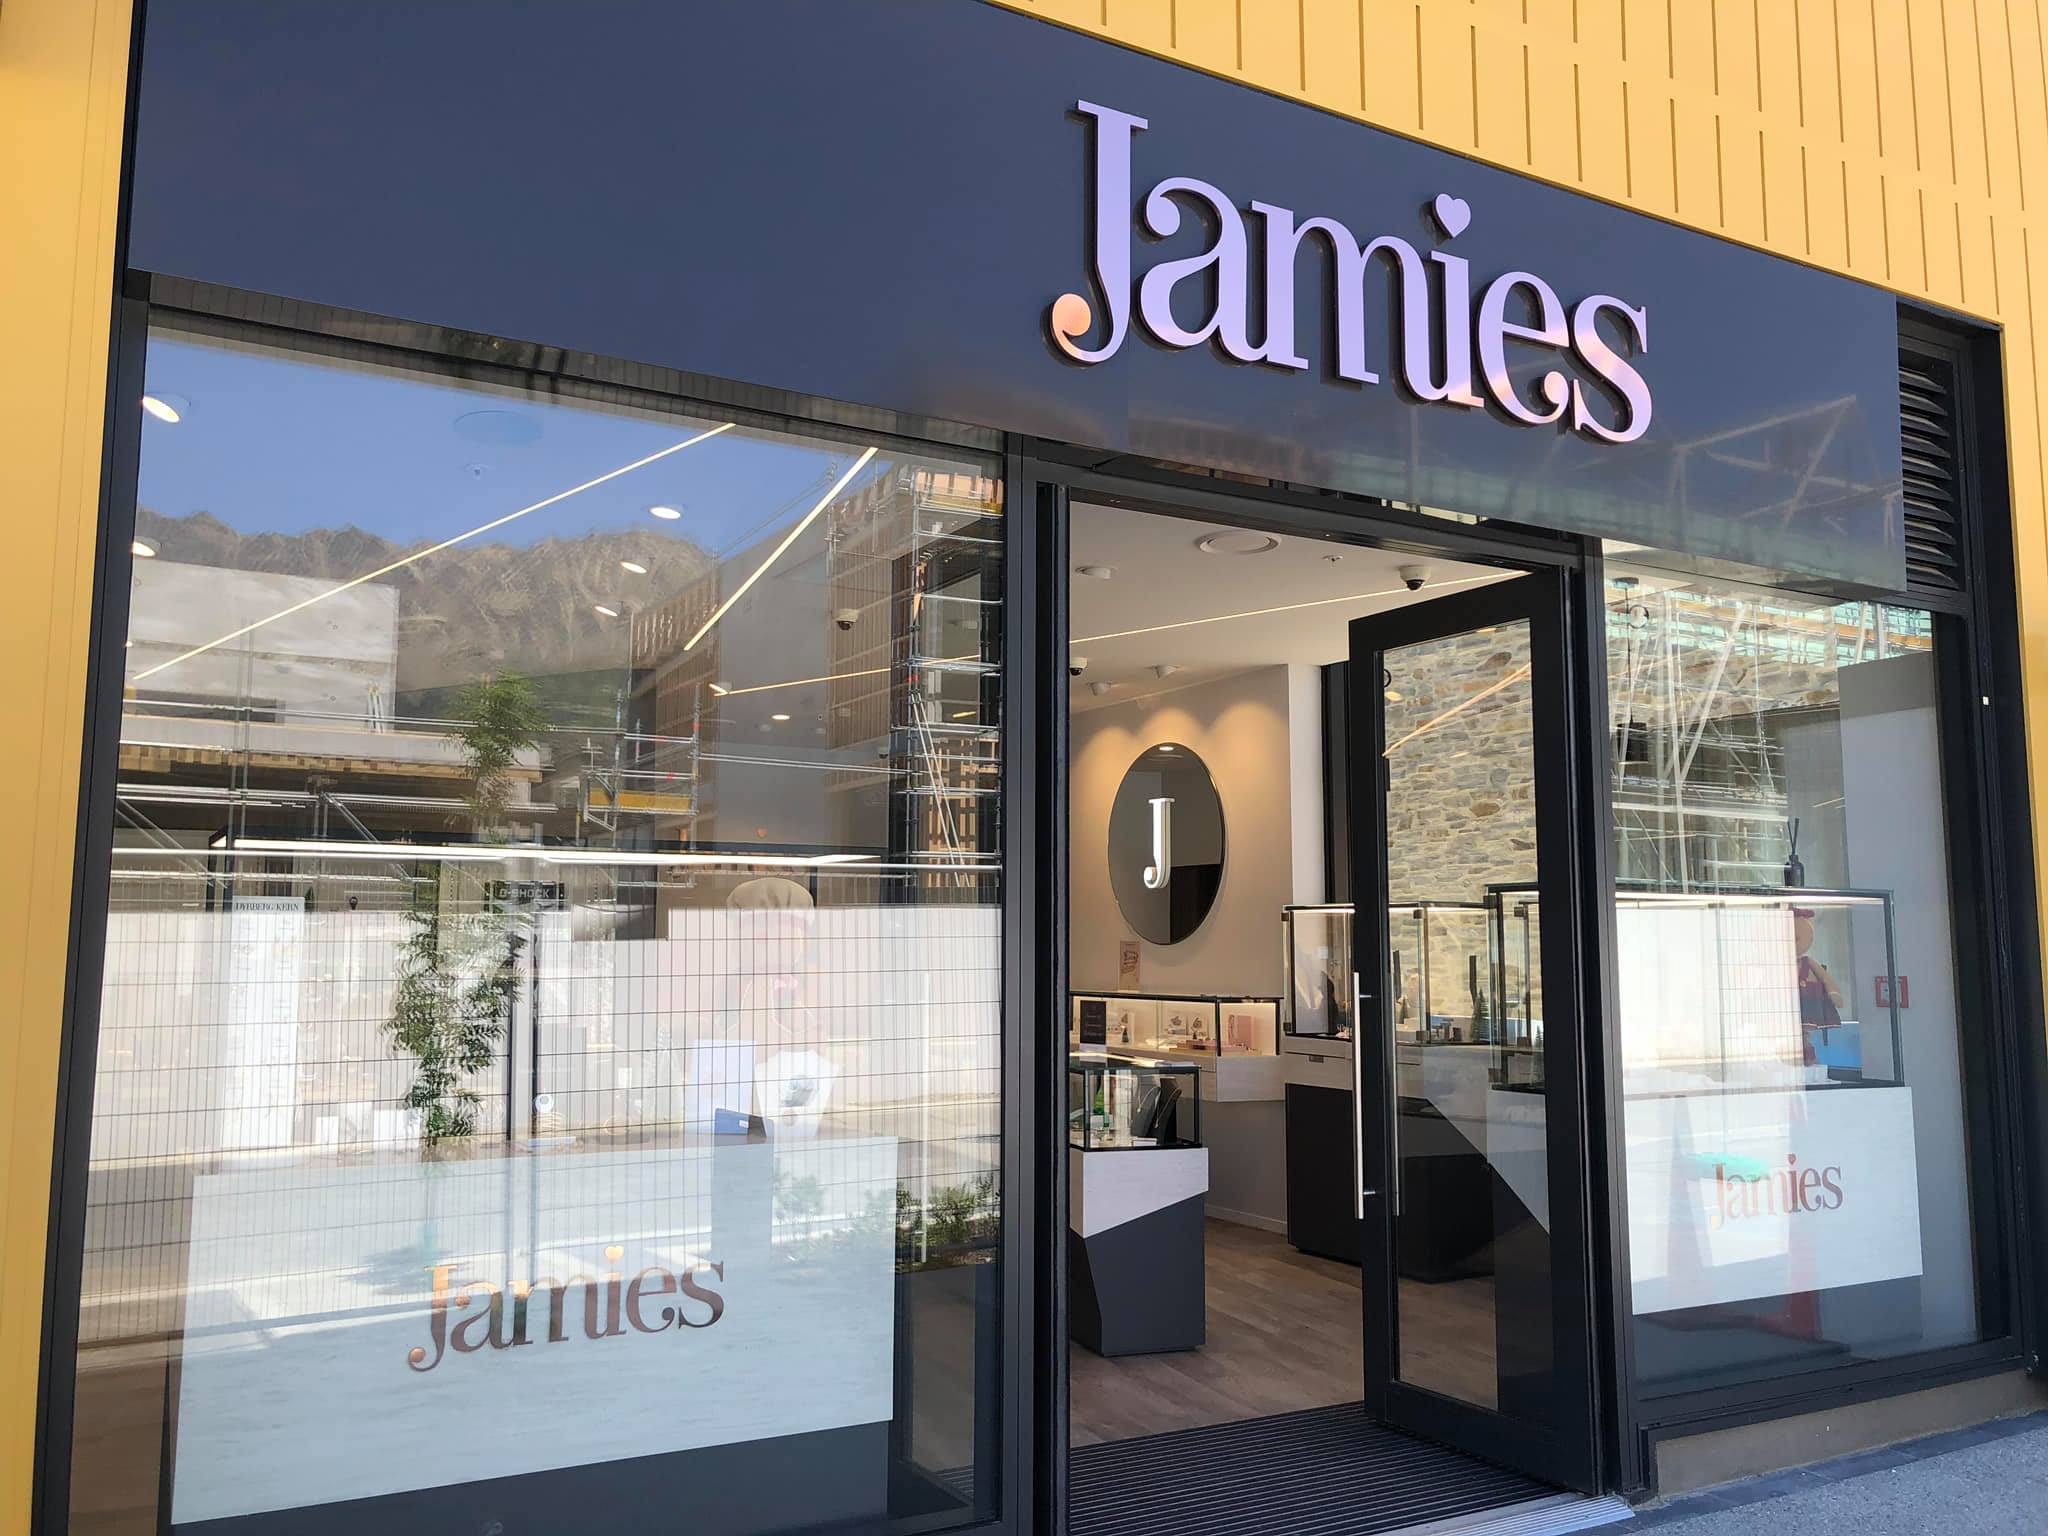 Jamies Jewellers